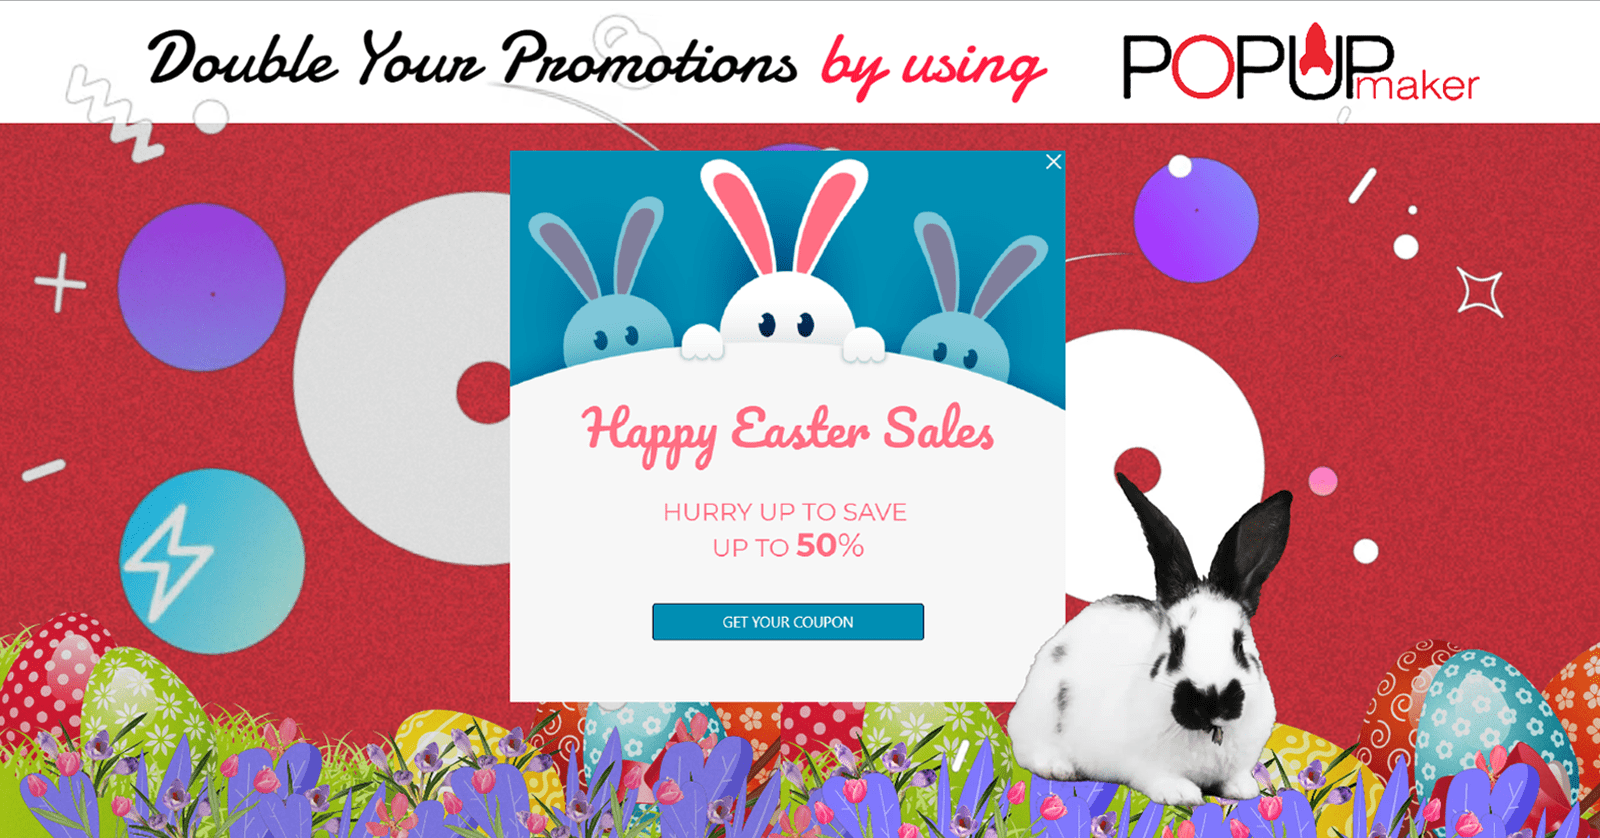 Easter marketing popup ideas banner